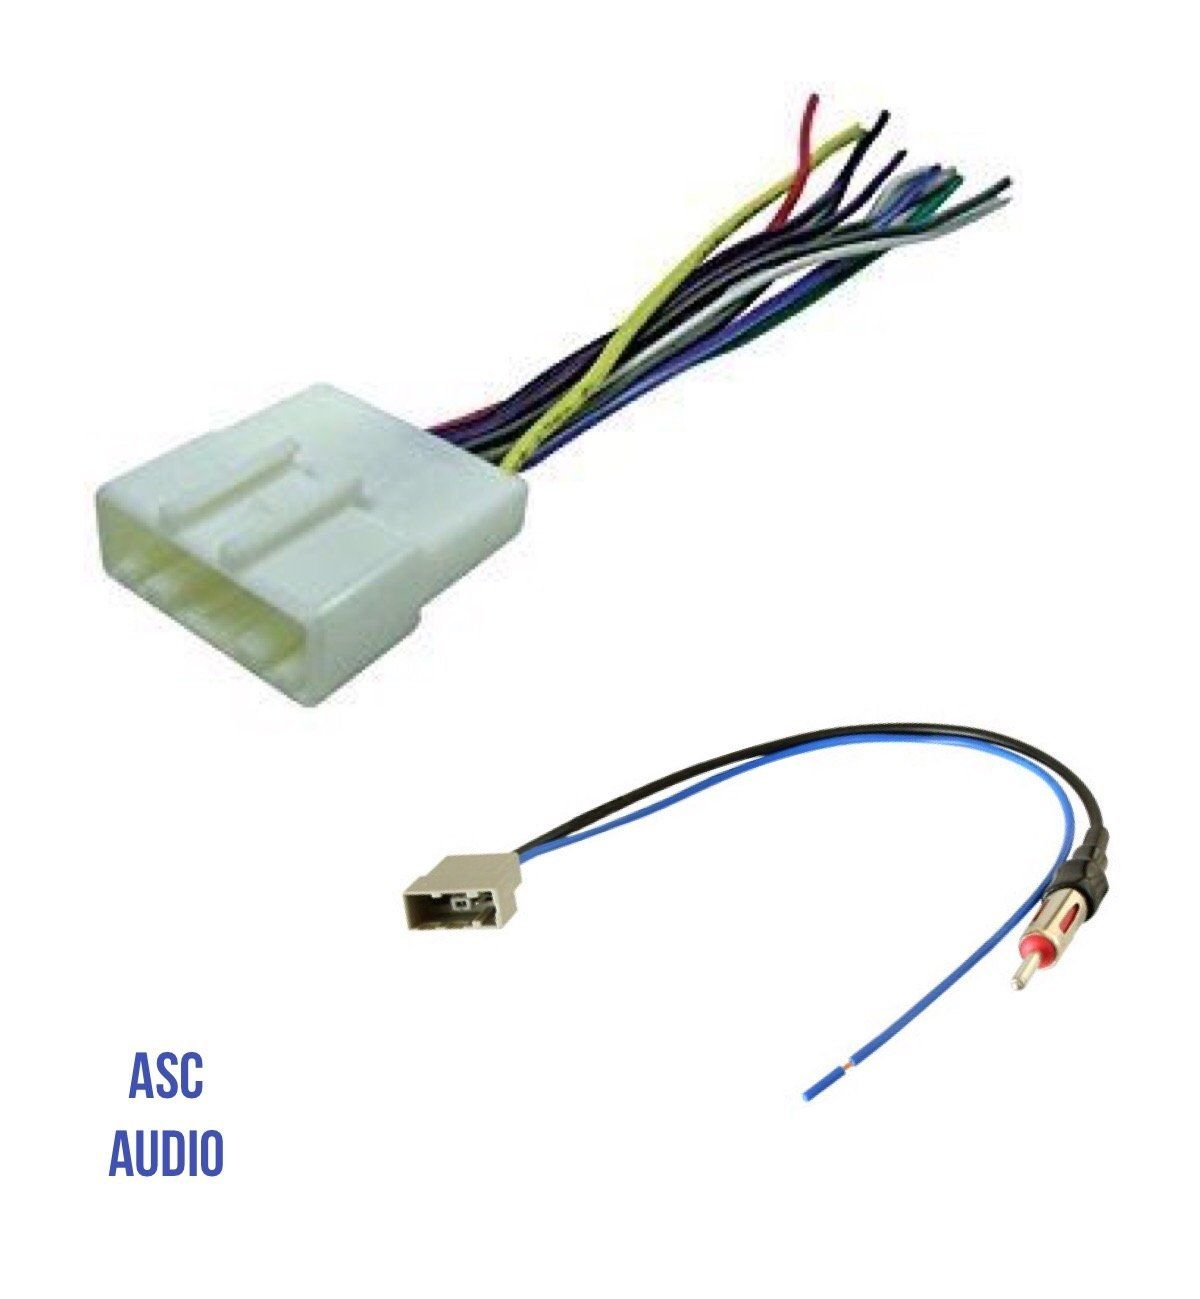 medium resolution of asc audio car stereo radio wire harness and antenna adapter to aftermarket radio for some infiniti nissan subaru etc listed below